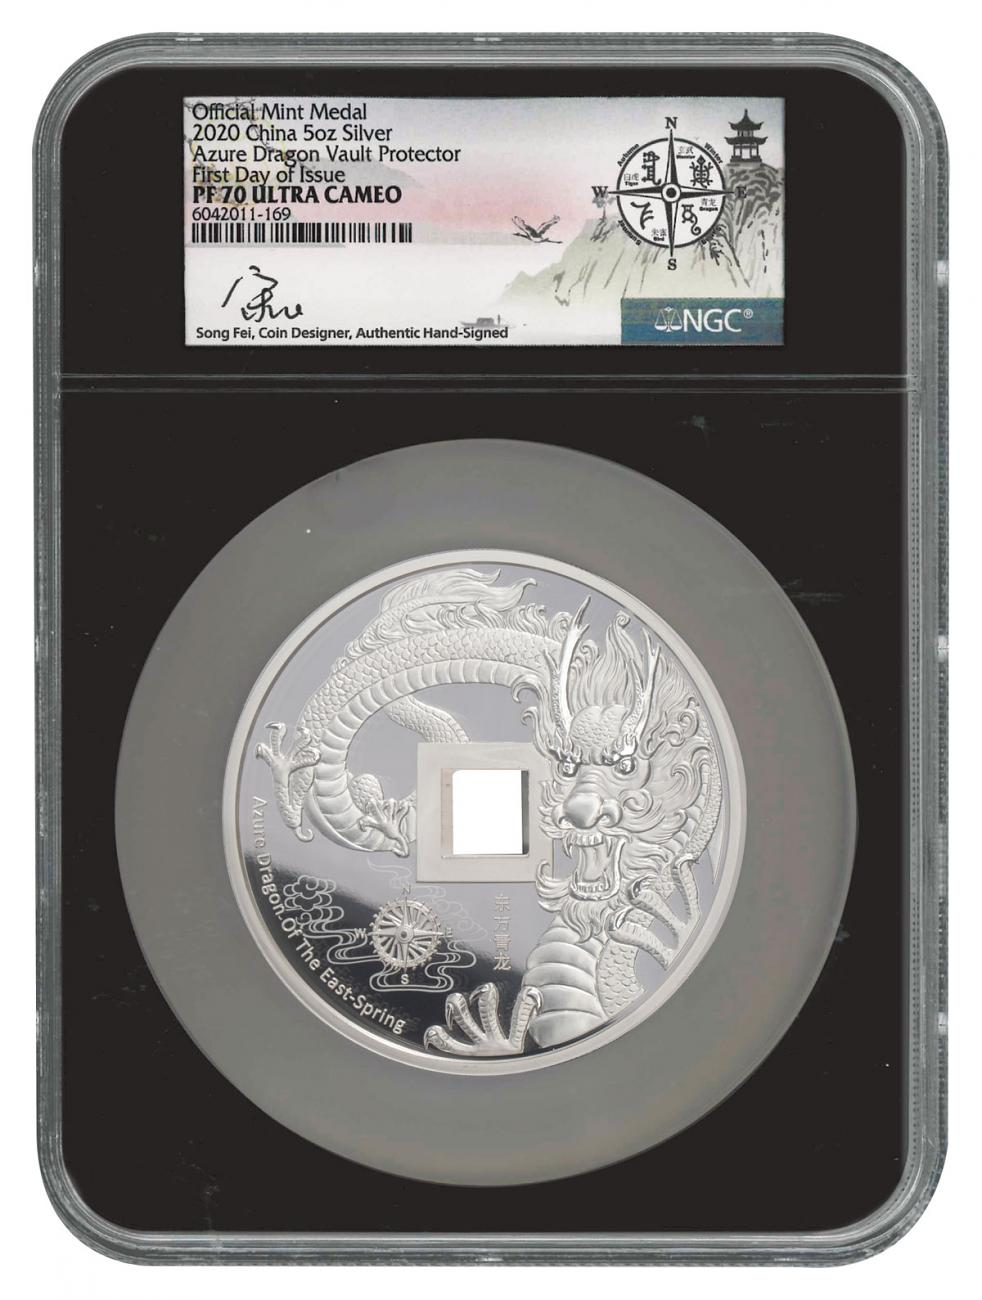 2020 China Azure Dragon of the East Vault Protector 5 oz Silver Proof Medal Scarce and Unique Coin Division NGC PF70 UC FDI Song Fei Signed Label